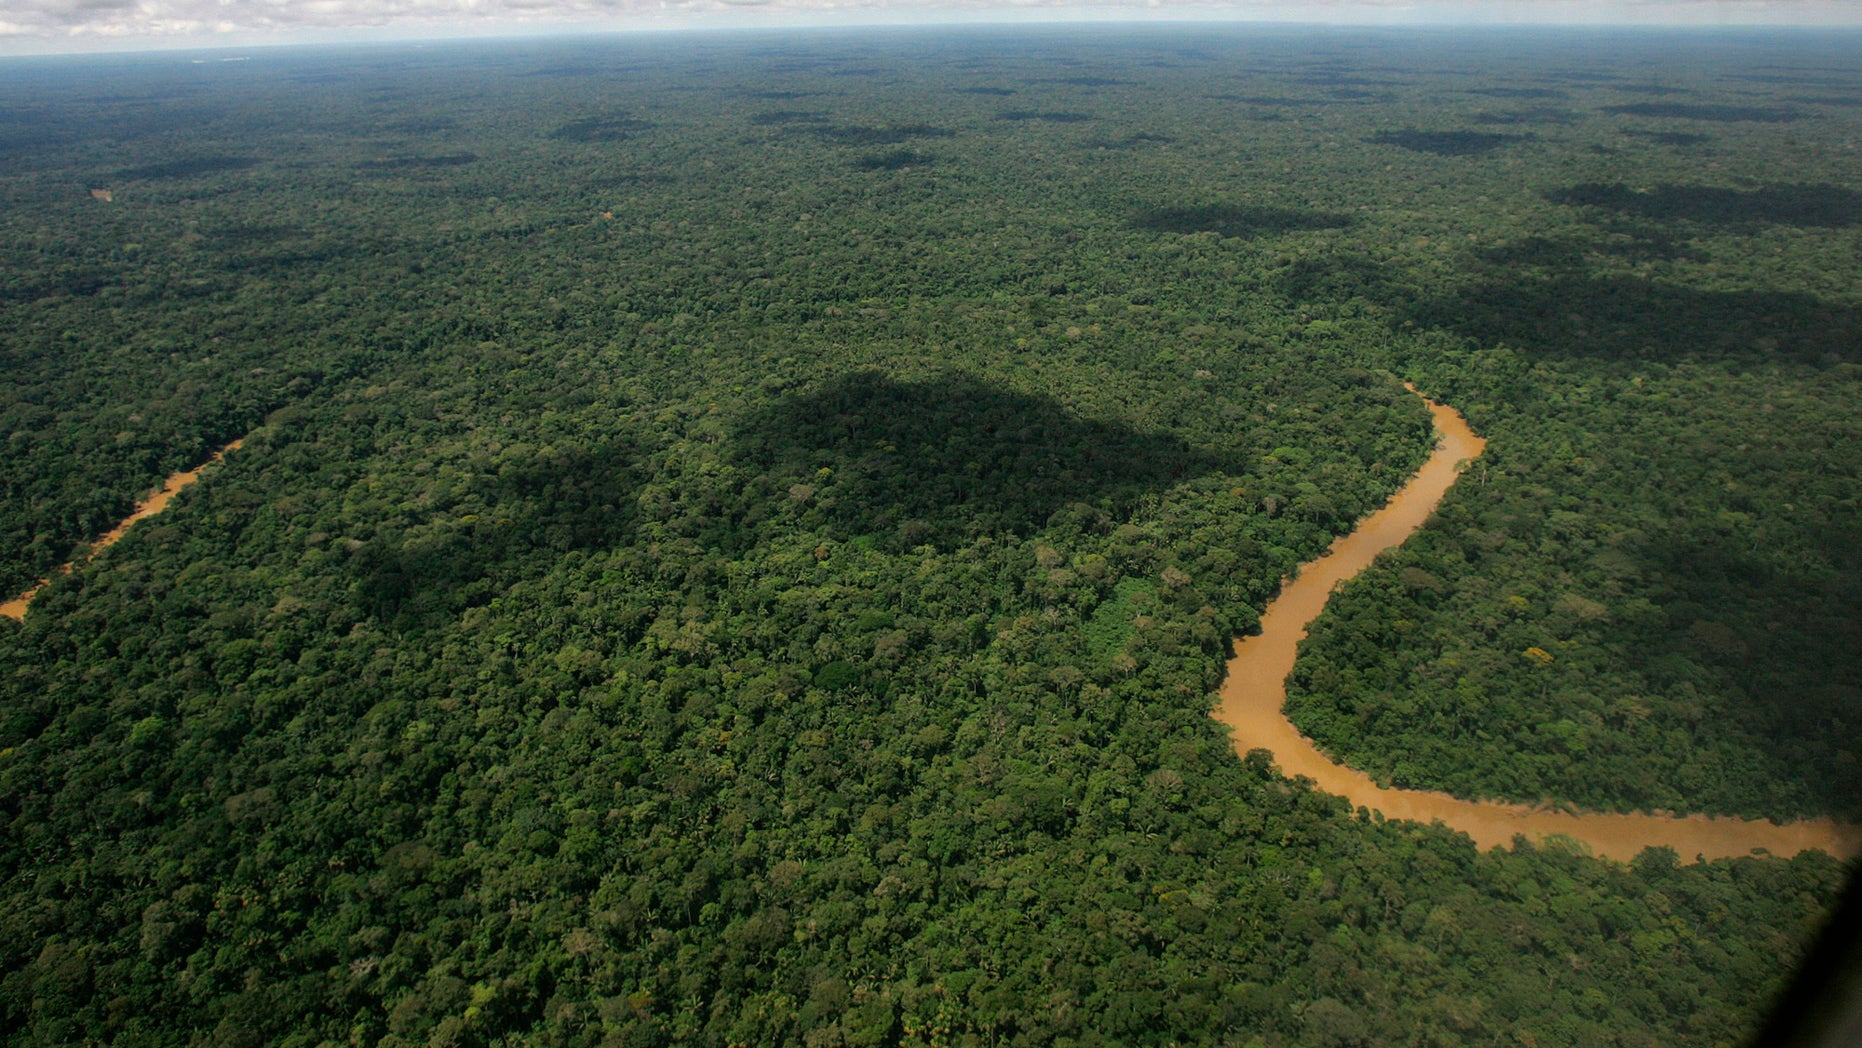 FILE - This May 17, 2007 file photo shows an aerial view of Yasuni National Park in Ecuador's northeastern jungle. Lawmakers on Thursday, Oct. 3, 2013 authorized the extraction of oil from Yasuni National Park, a pristine Amazon reserve. (AP Photo/Dolores Ochoa, File)